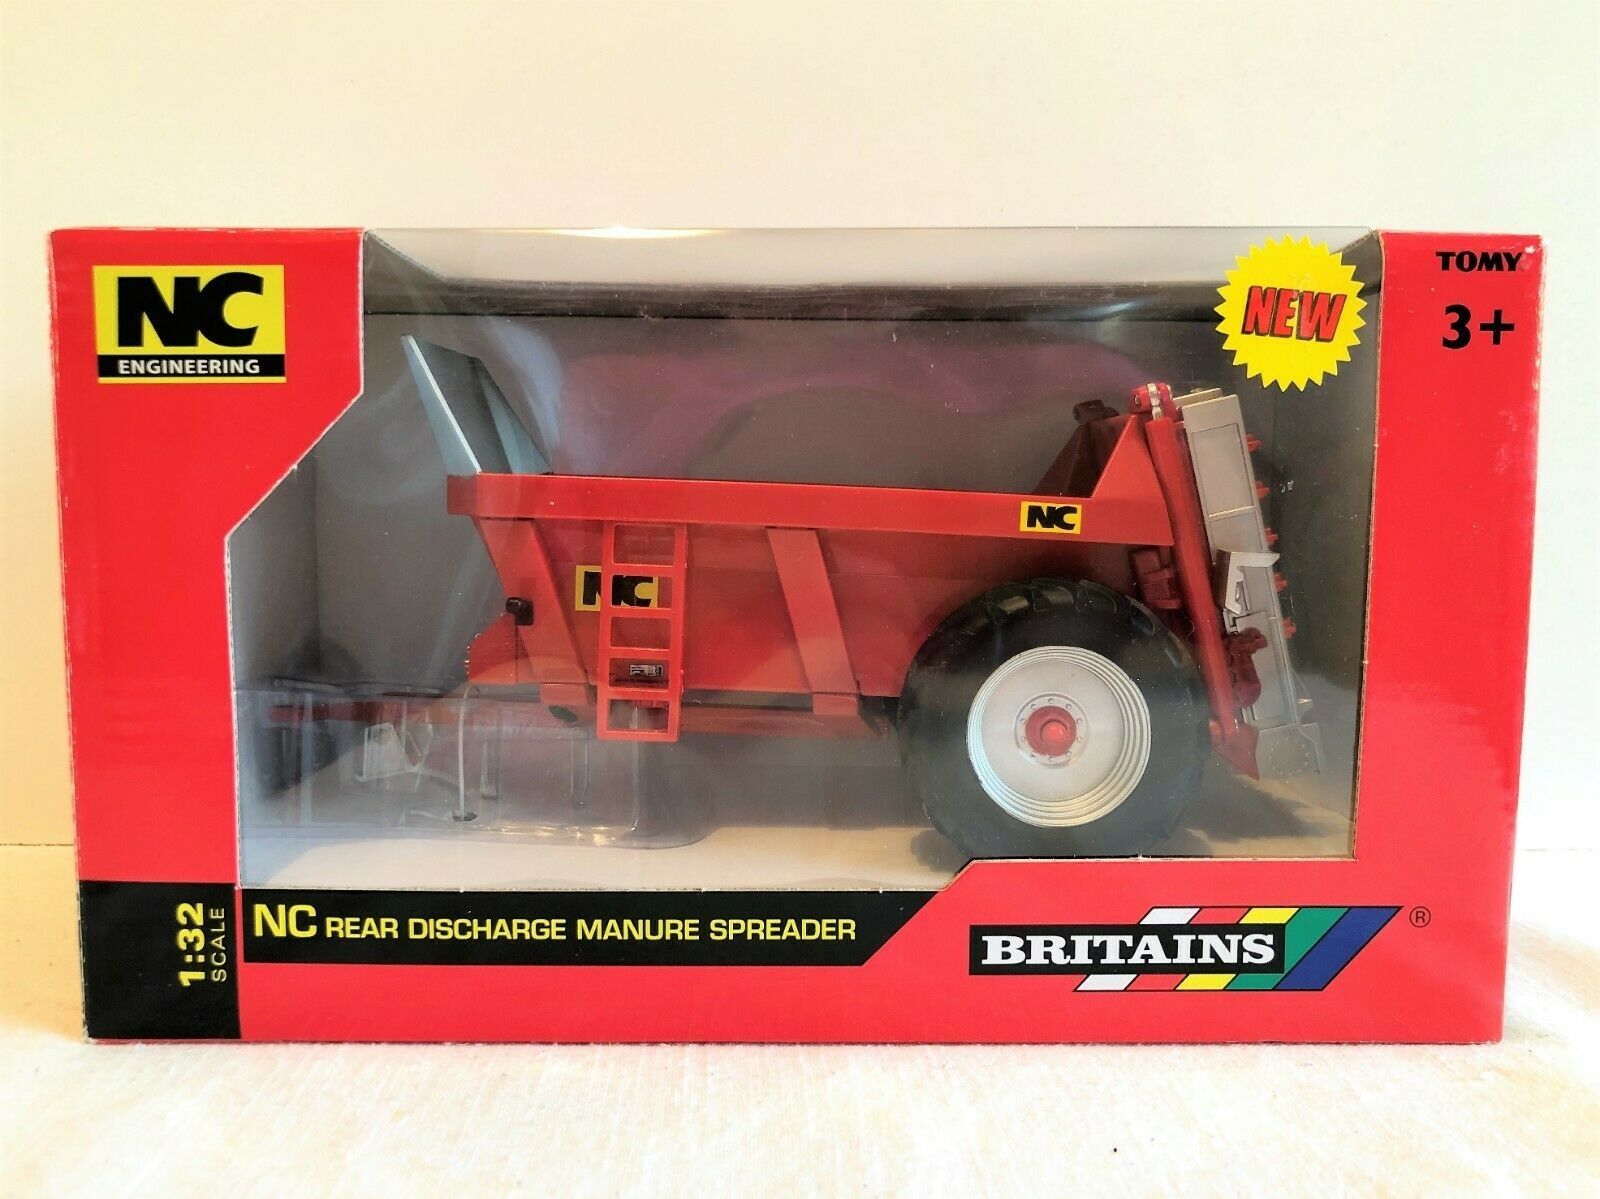 BRITAINS 1 32 - NC REAR DISCHARGE MANURE SPREADER BOXED 43181 - PLEASE SEE BELOW